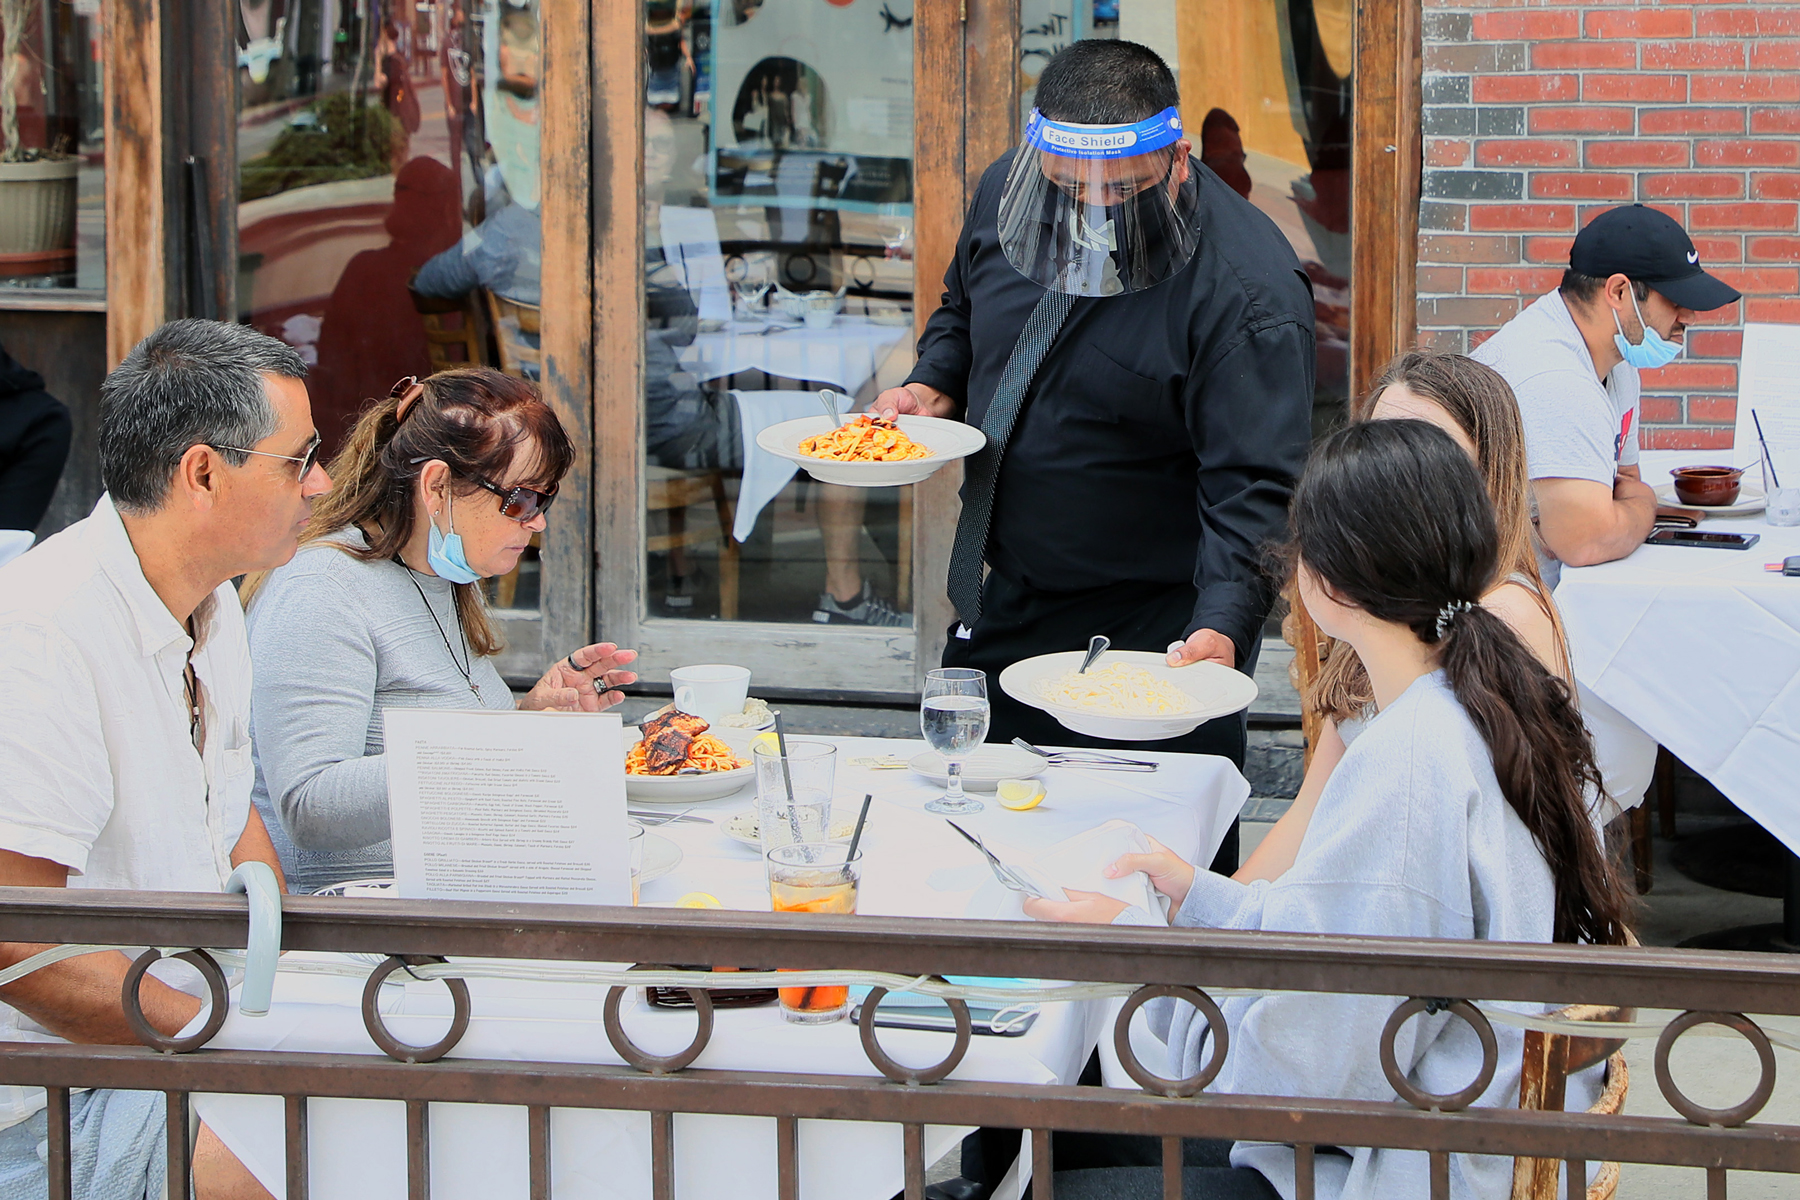 dining patrons being served by a waiter wearing a face mask and shield